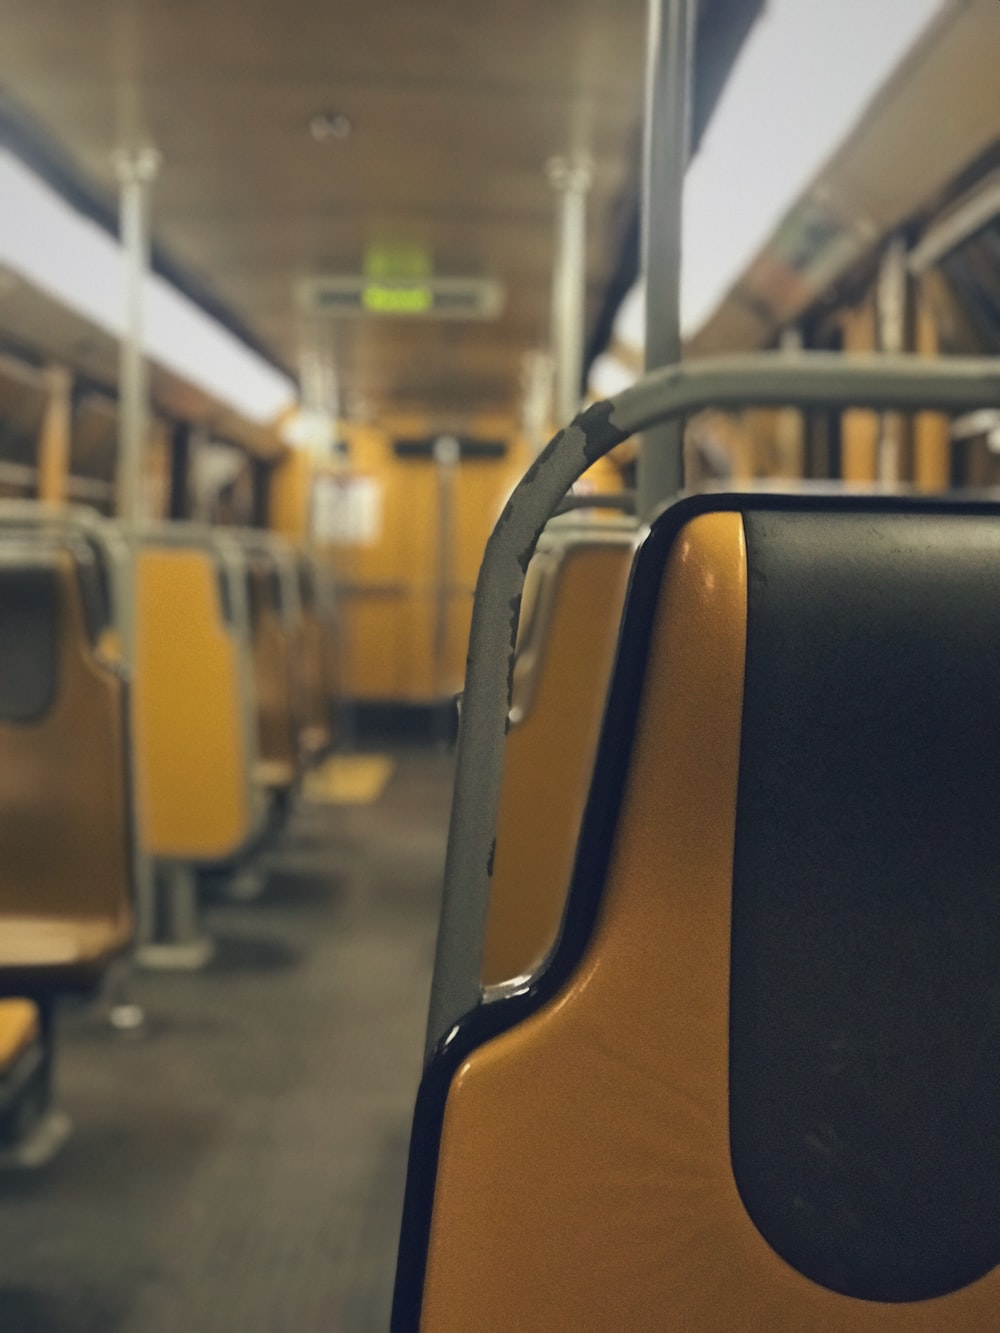 empty public passenger vehicle